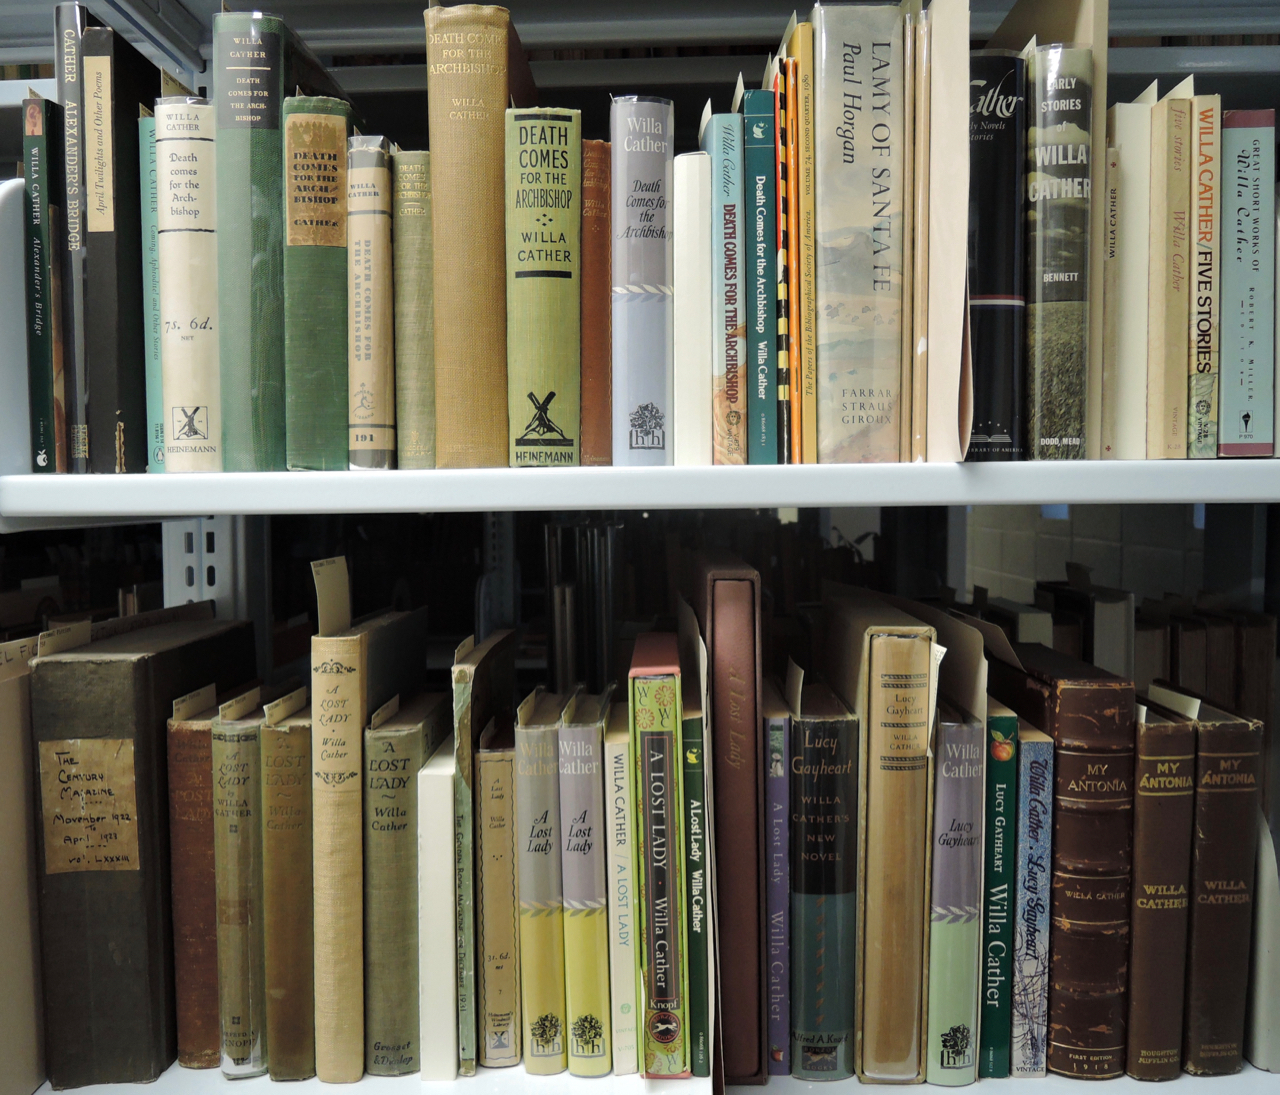 A selection of works by Willa Cather on shelves in the Schimmel Collection